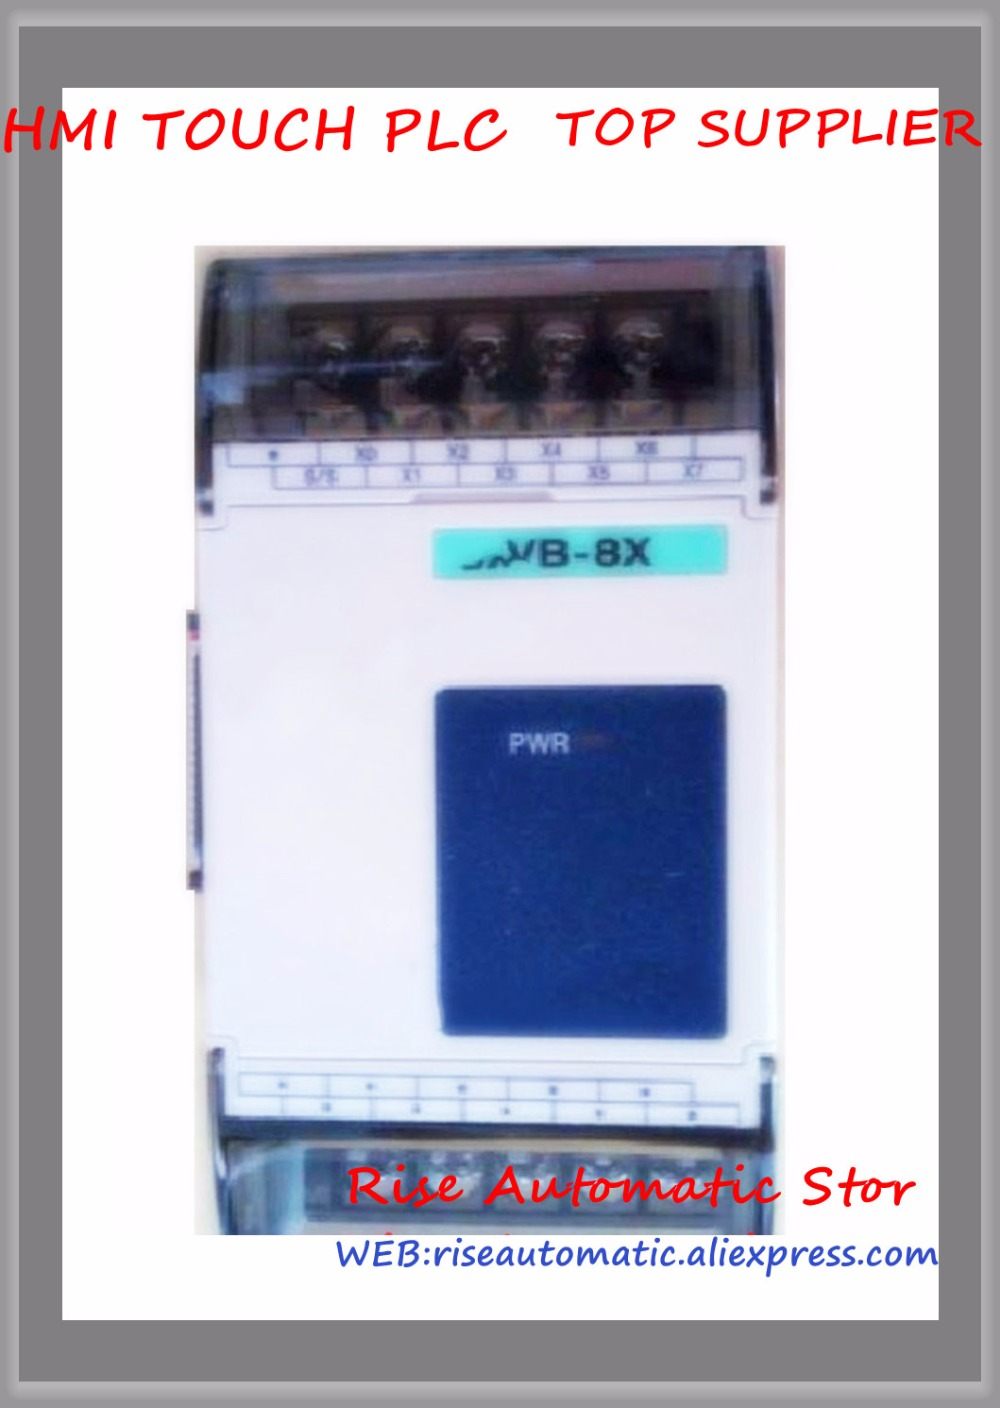 VB-8X-C PLC New Original 24VDC 8 point input Expansion Module new original vb 16yr plc 24vdc 16 point input expansion module